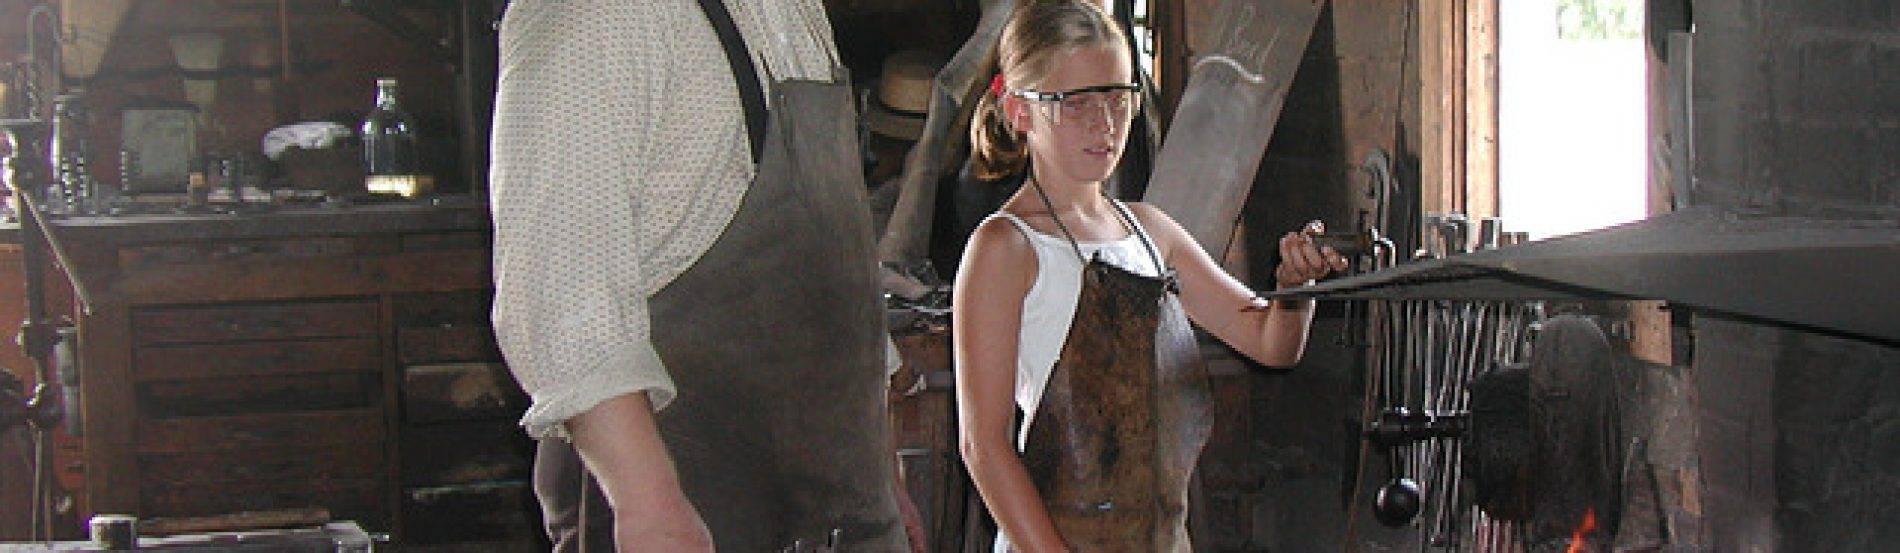 teen and LHF staff member work in blacksmith shop